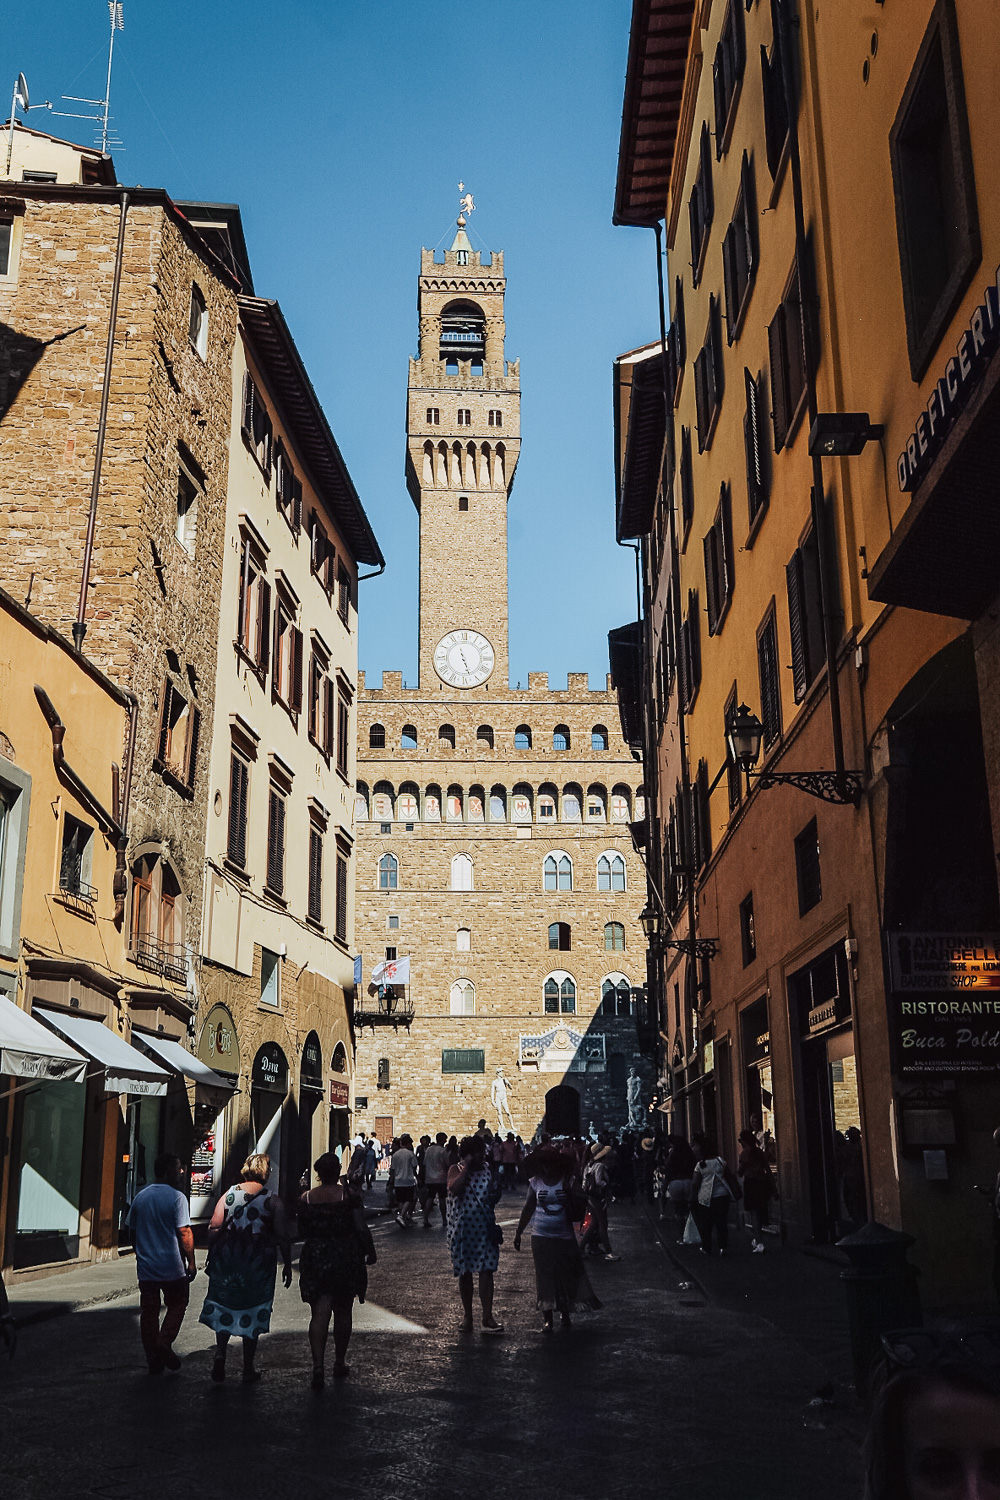 Palazzo Vecchio, the town hall of Florence | How to Spend 48 Hours in Florence | Tuscany, Italy | Mondomulia